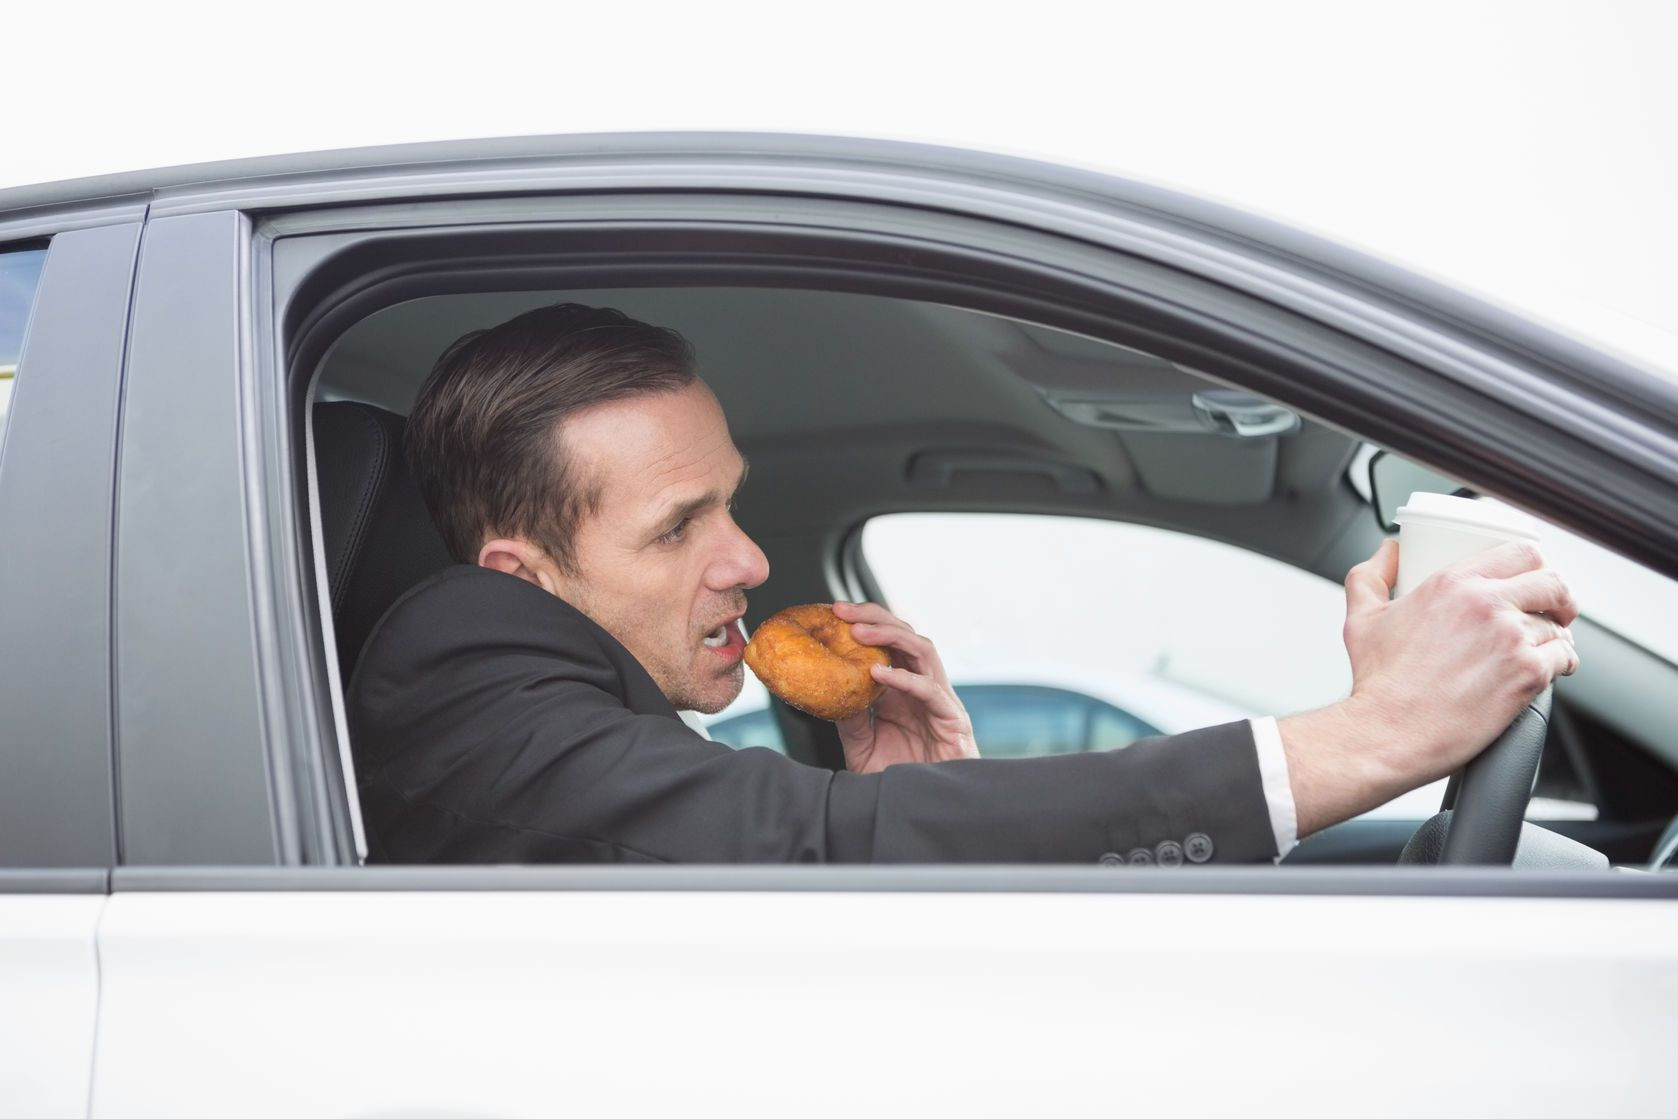 Man eating food whilst driving